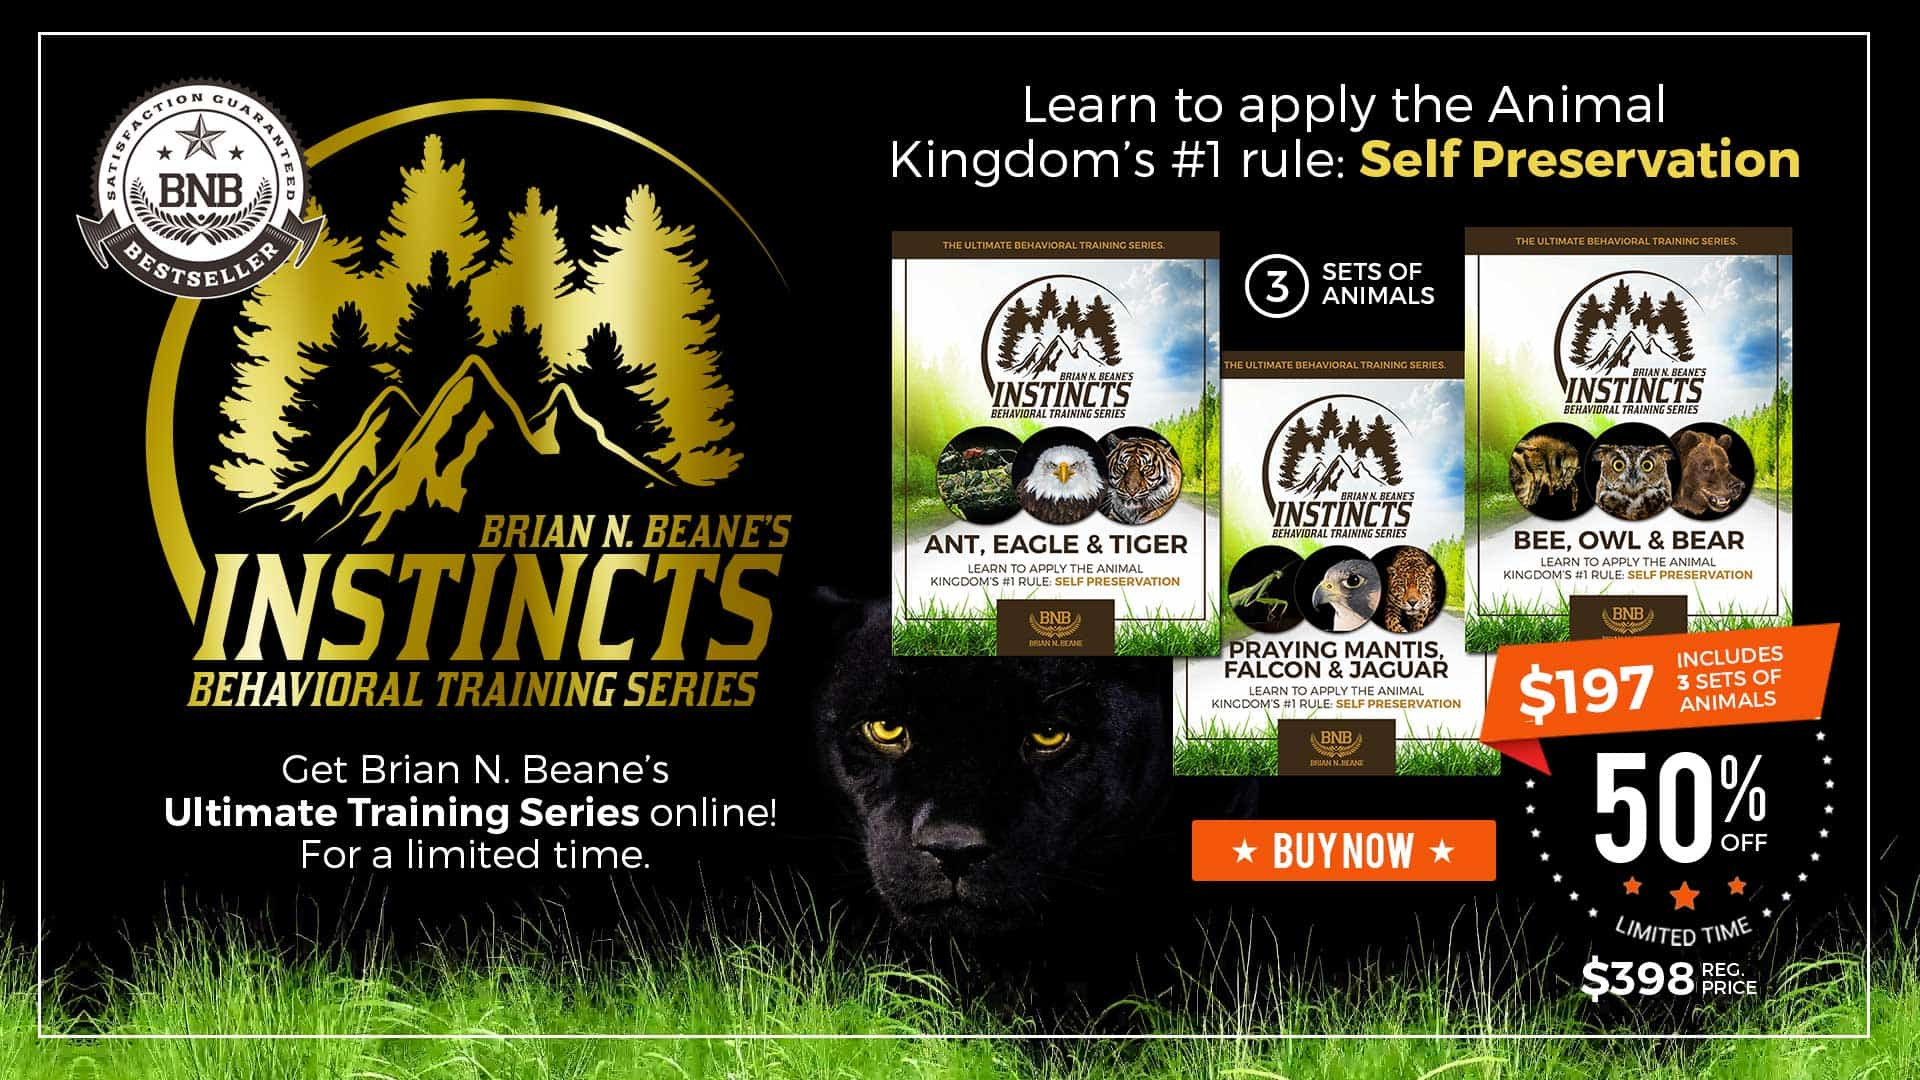 INSTINCTS: The Ultimate Behavioral Training Series.